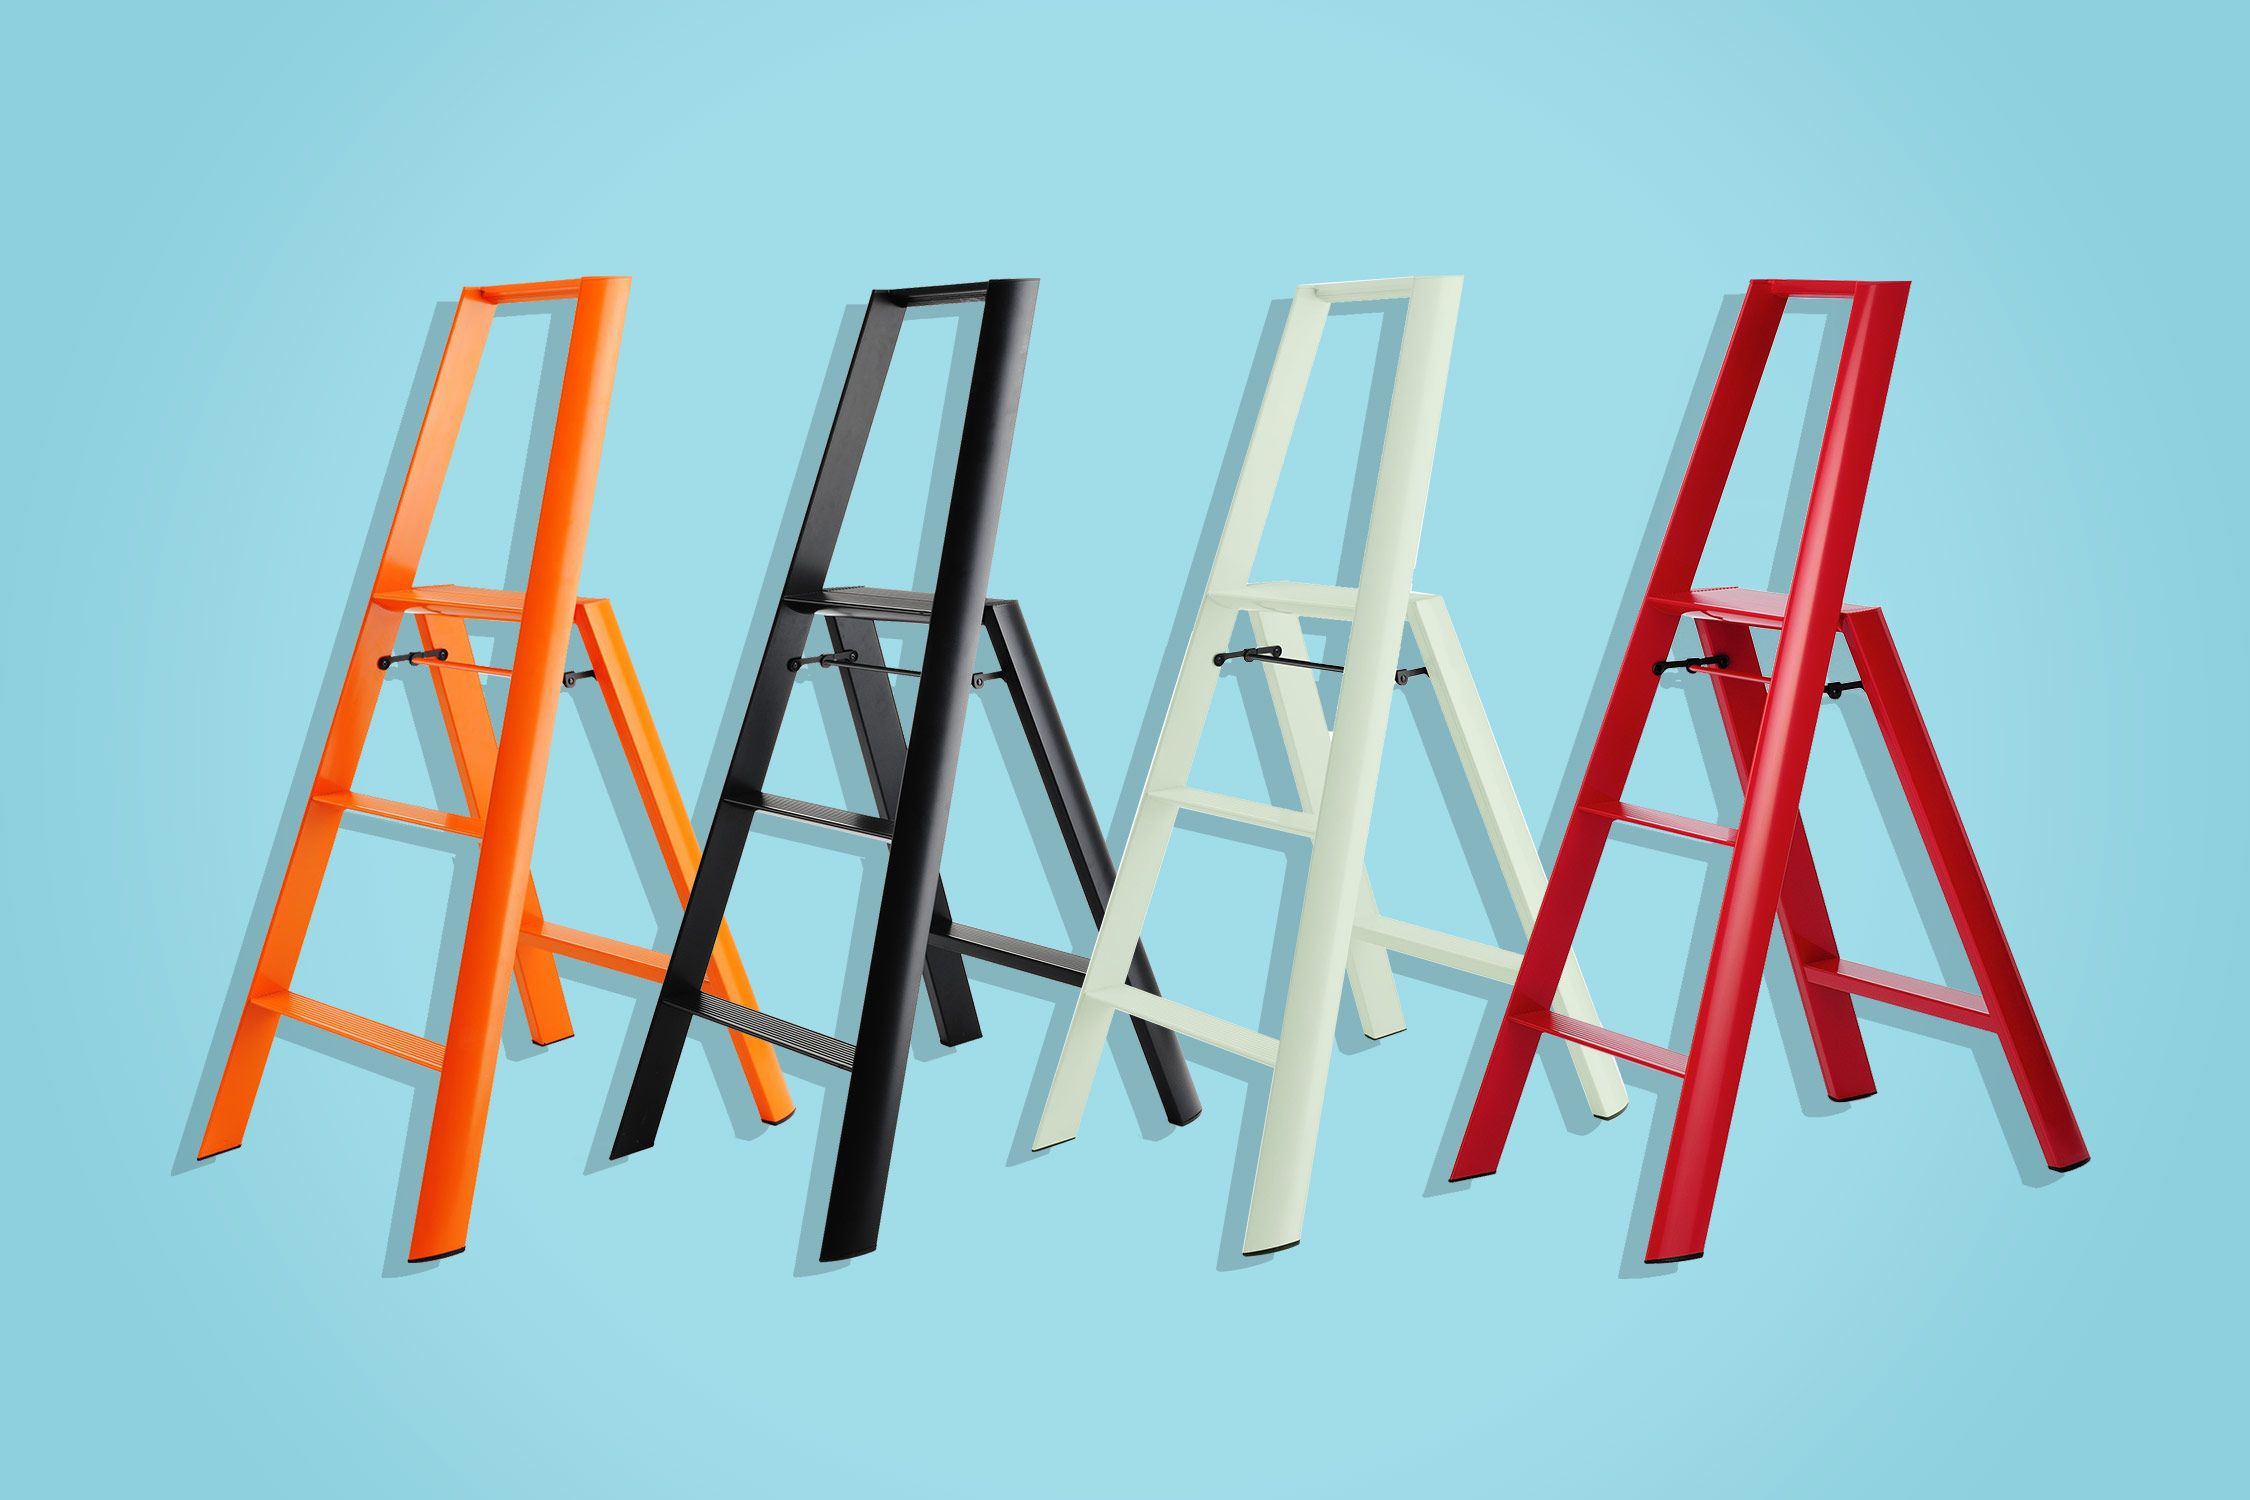 Wondrous The Best Ladder Is The Hasegawa Lucano 3 Step Ladder 2017 Alphanode Cool Chair Designs And Ideas Alphanodeonline